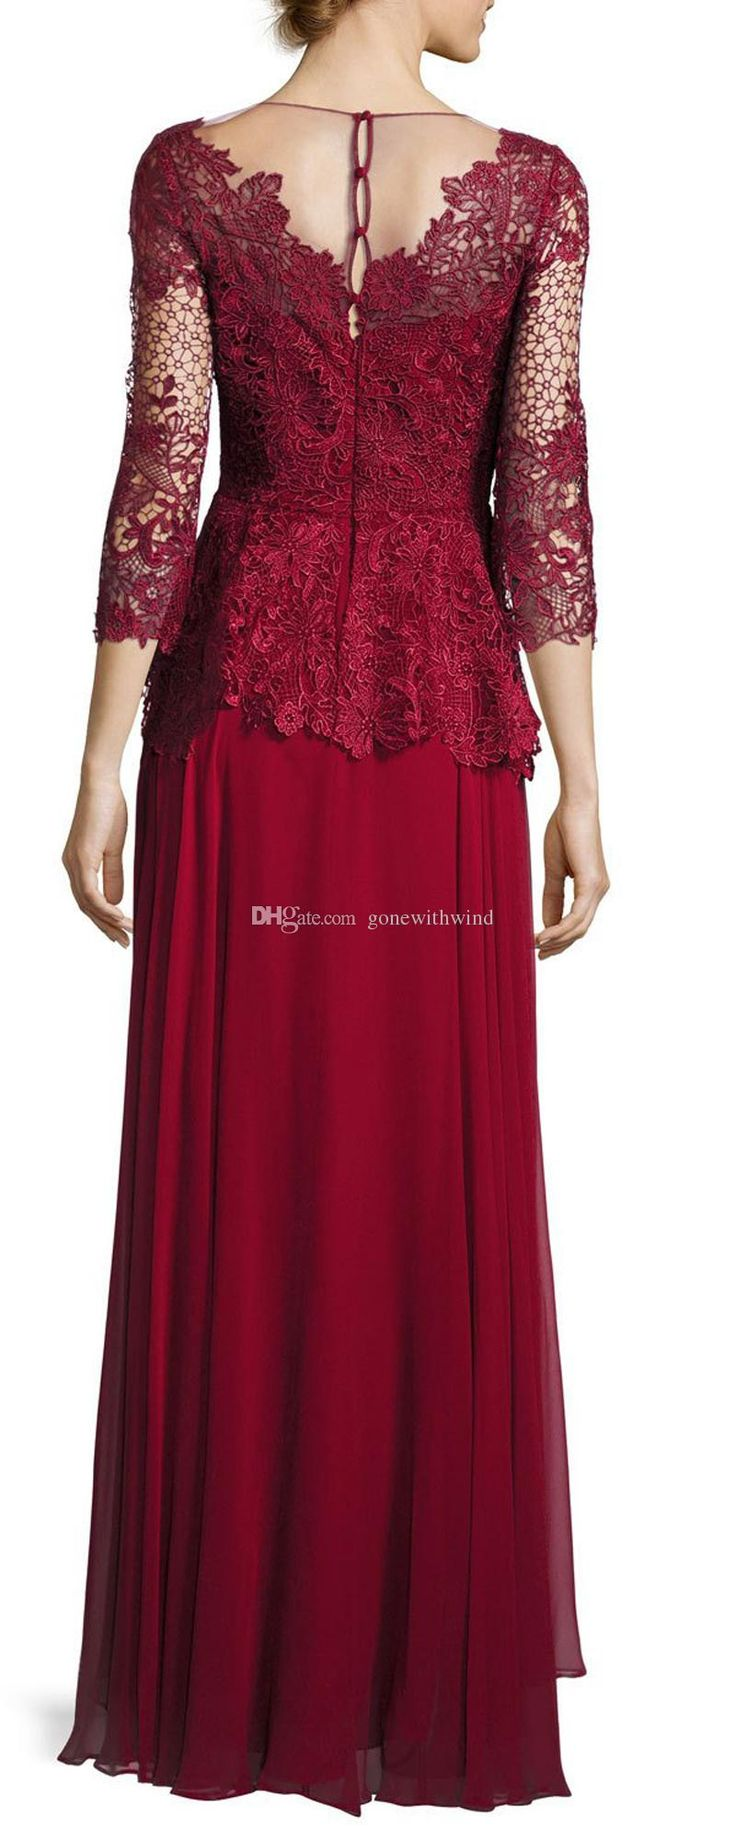 dark red mother of the bride dresses lace bodice and silk chiffon skirt evening gown 3/4 sleeve peplum waist Round neckline scalloped